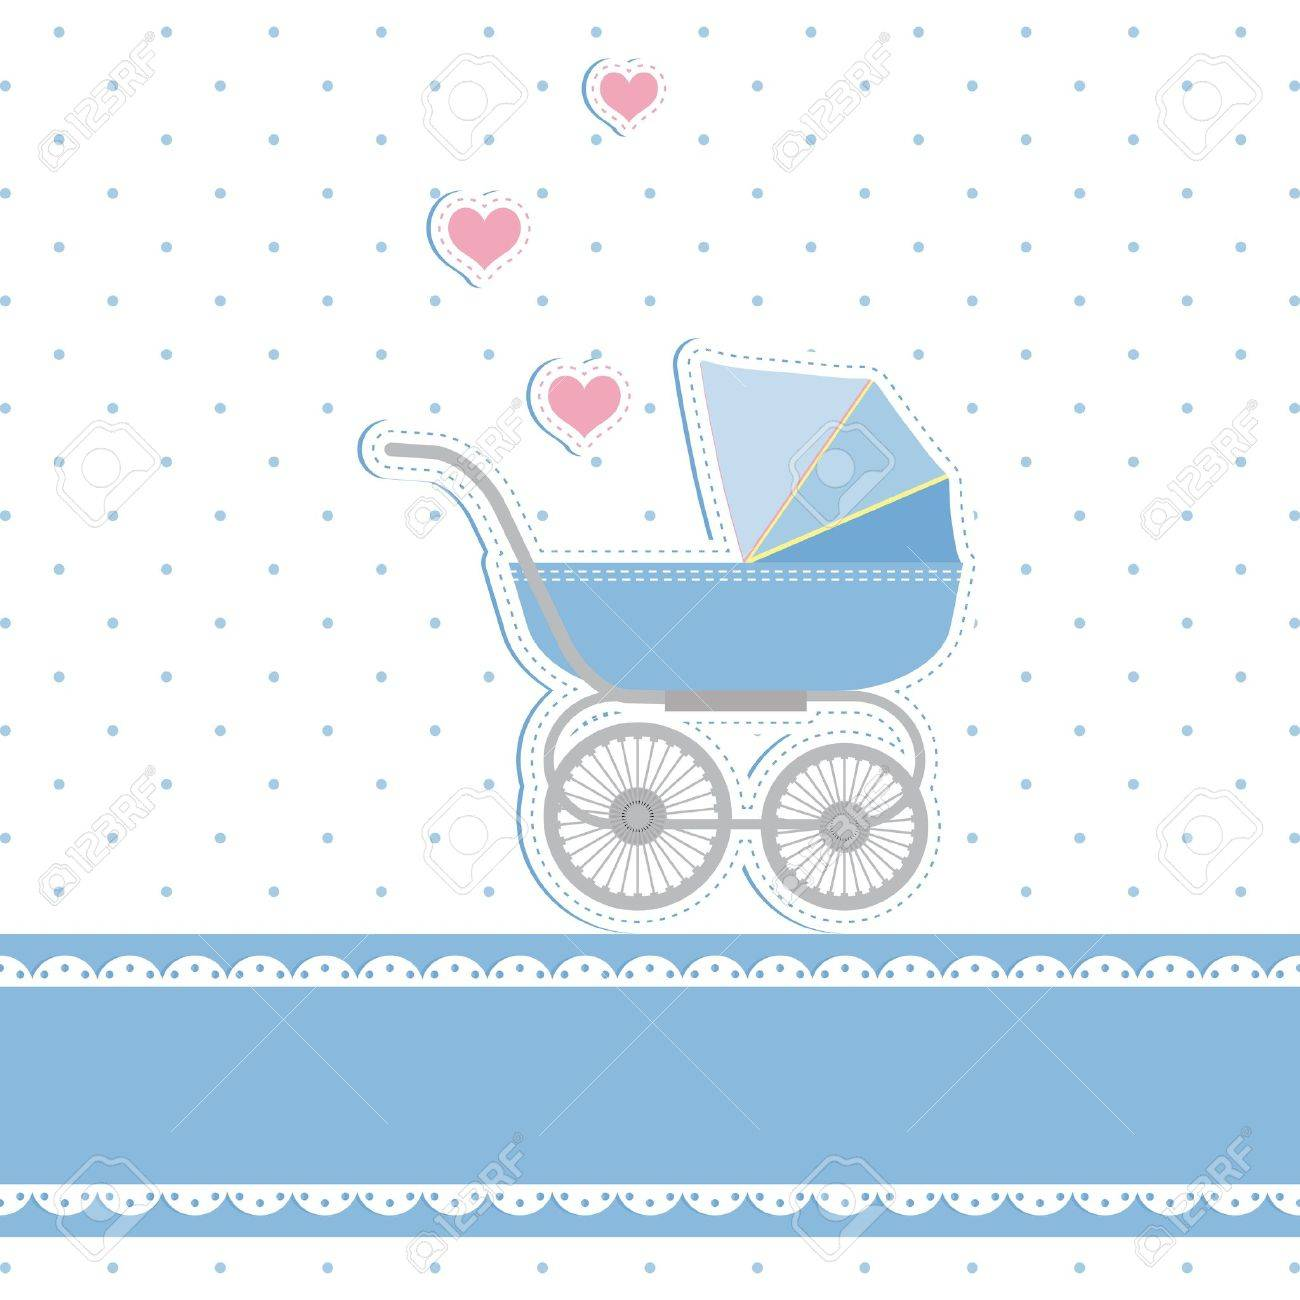 New Baby Boy Shower Invitation Card Royalty Free Cliparts Vectors – Baby Shower Invitation Cards for Boys